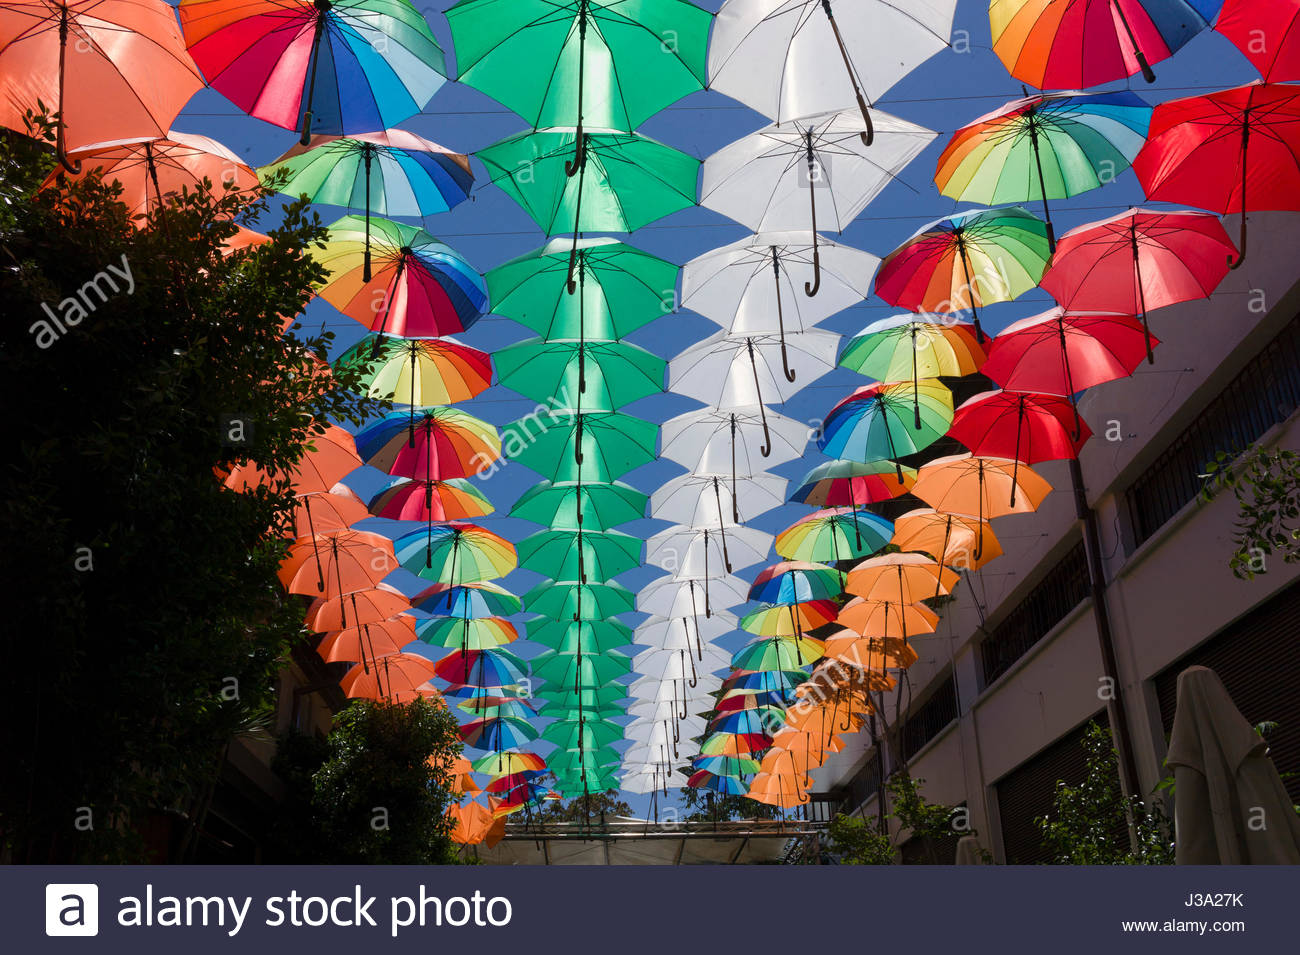 A 'Ceiling' of coloured umbrellas forming a display above an outside cafe in the Turkish quarter,Nicosia, Cyprus Stock Photo